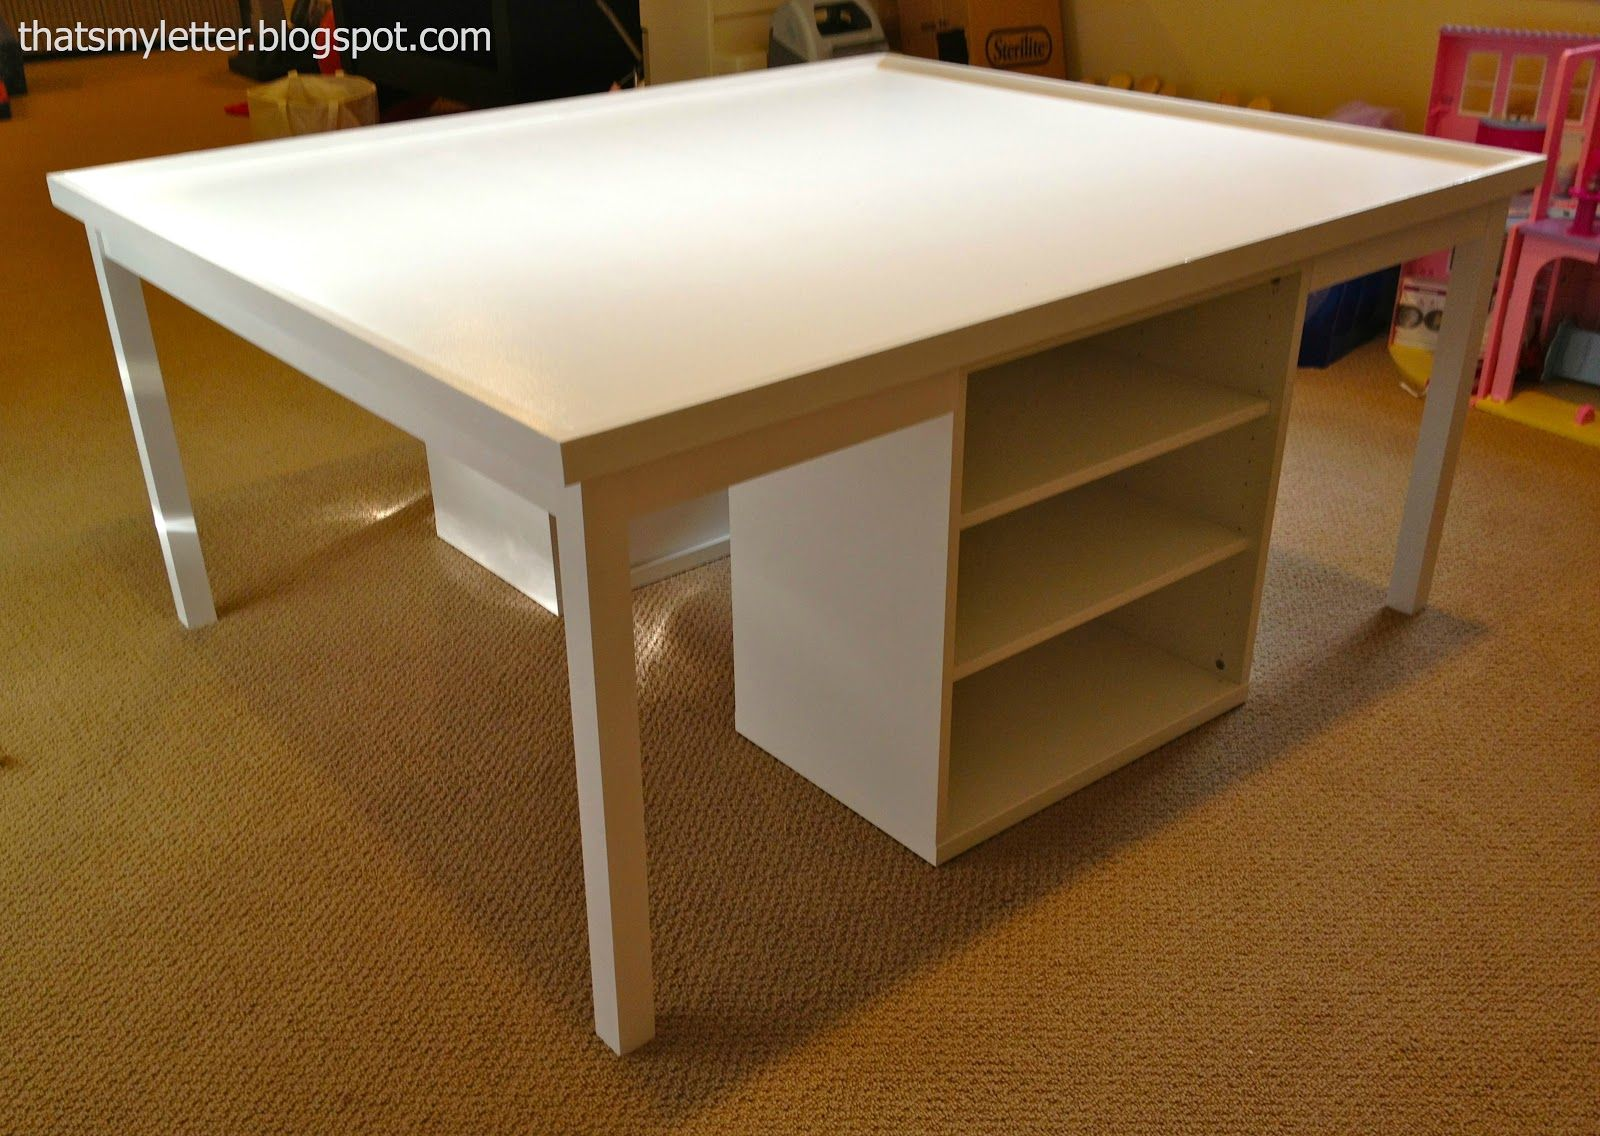 Superior Lego Storage Ideas And Building Tables | LEGO Table With Storage